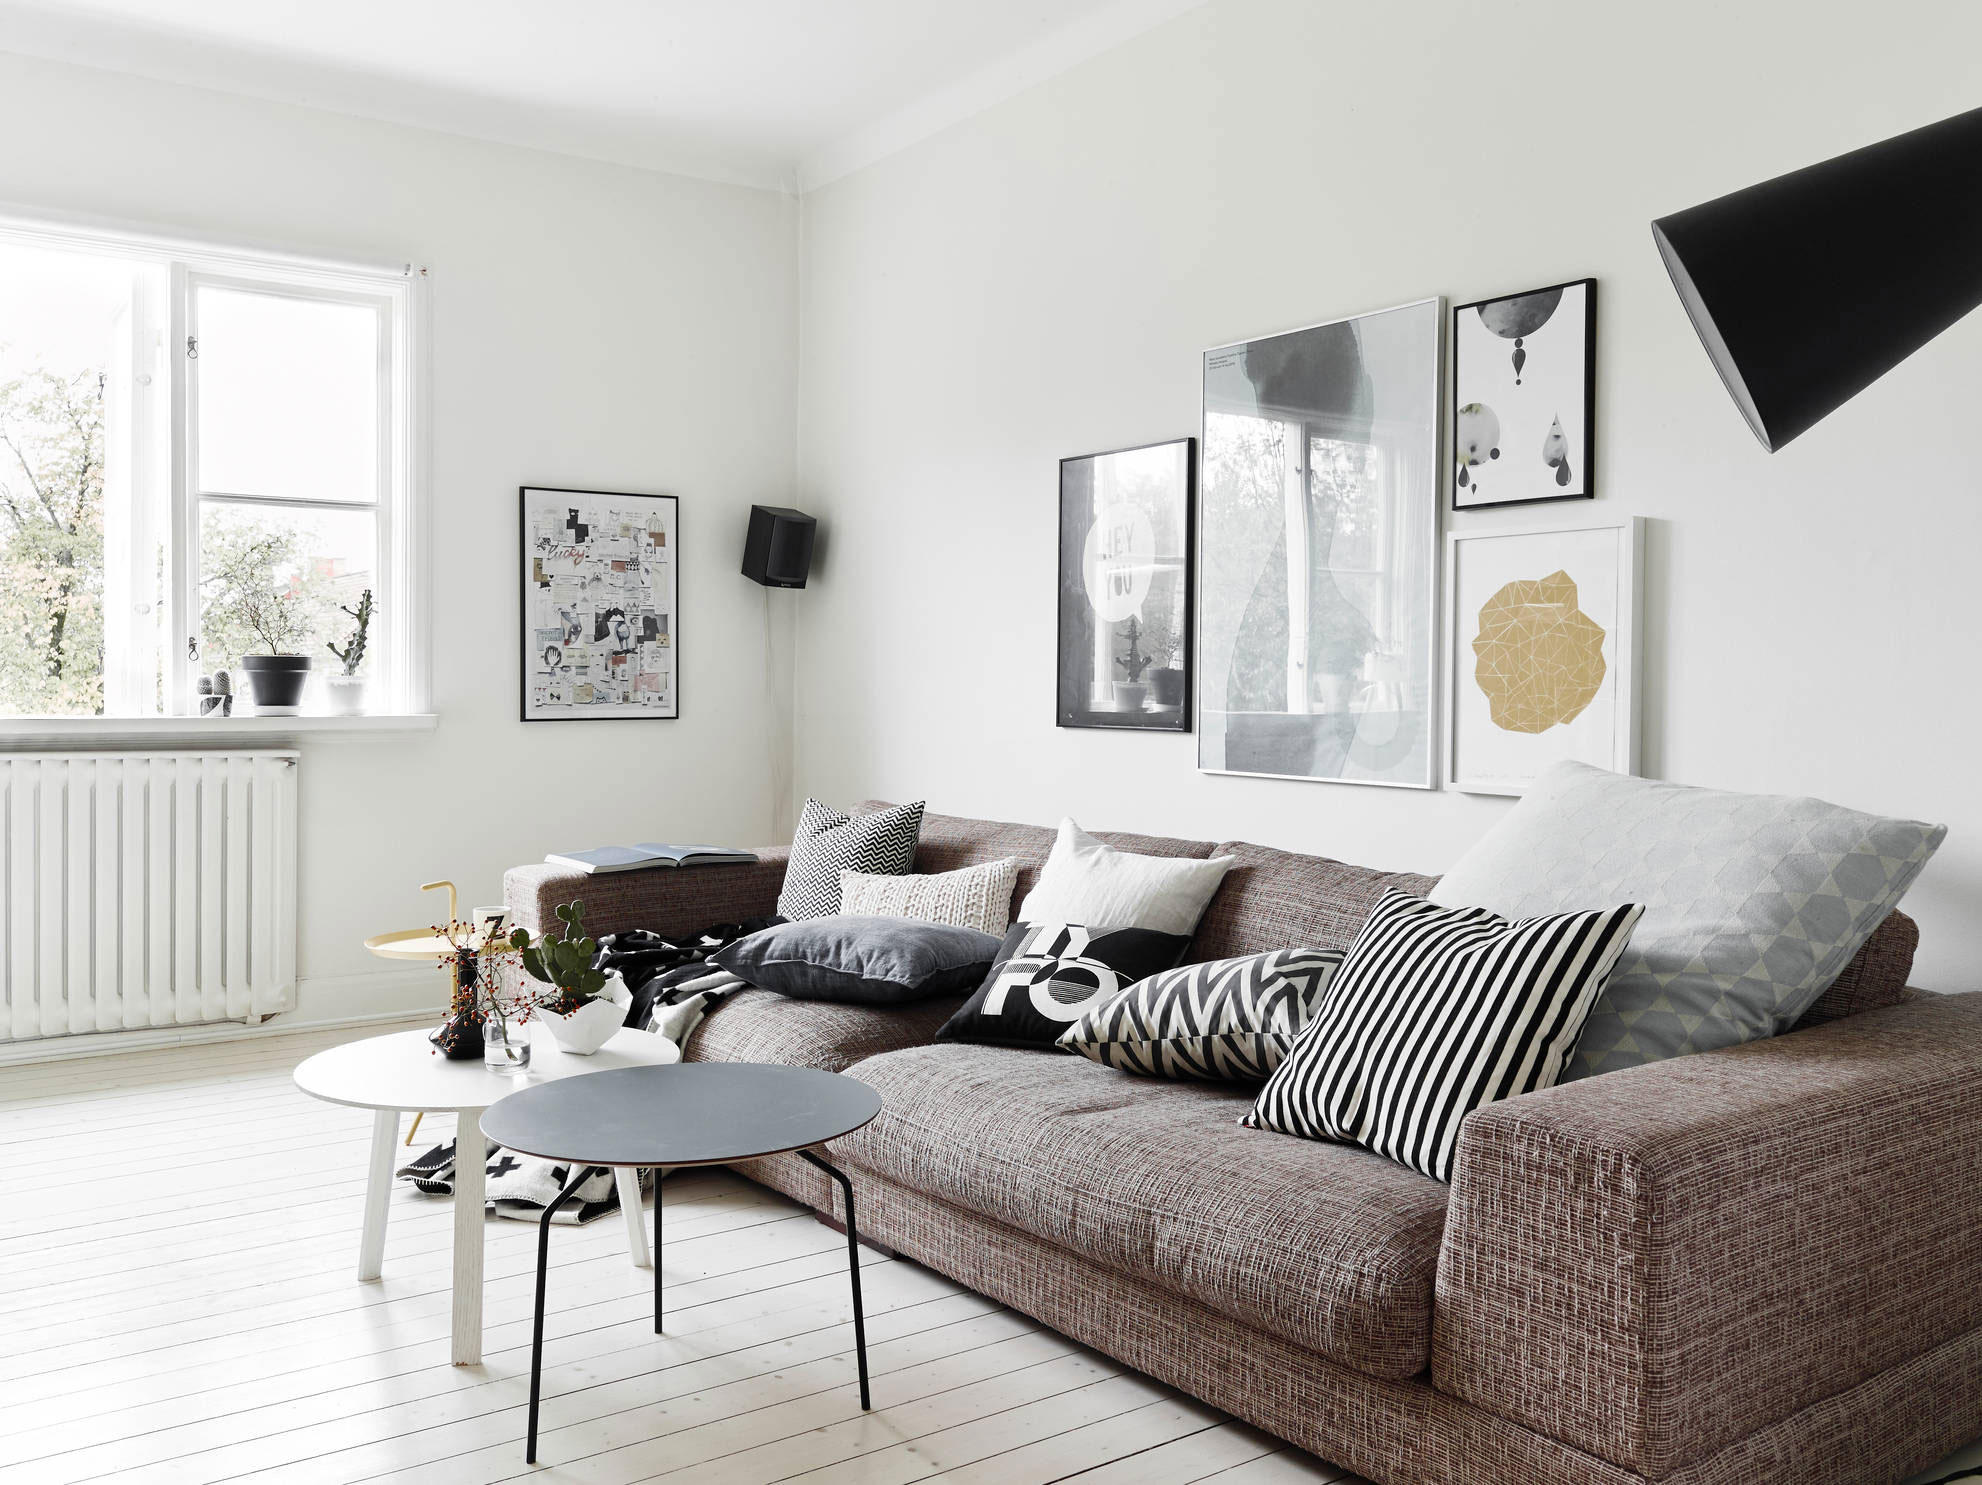 Scandinavian Interior Design: Apartment in Kungsladugårds